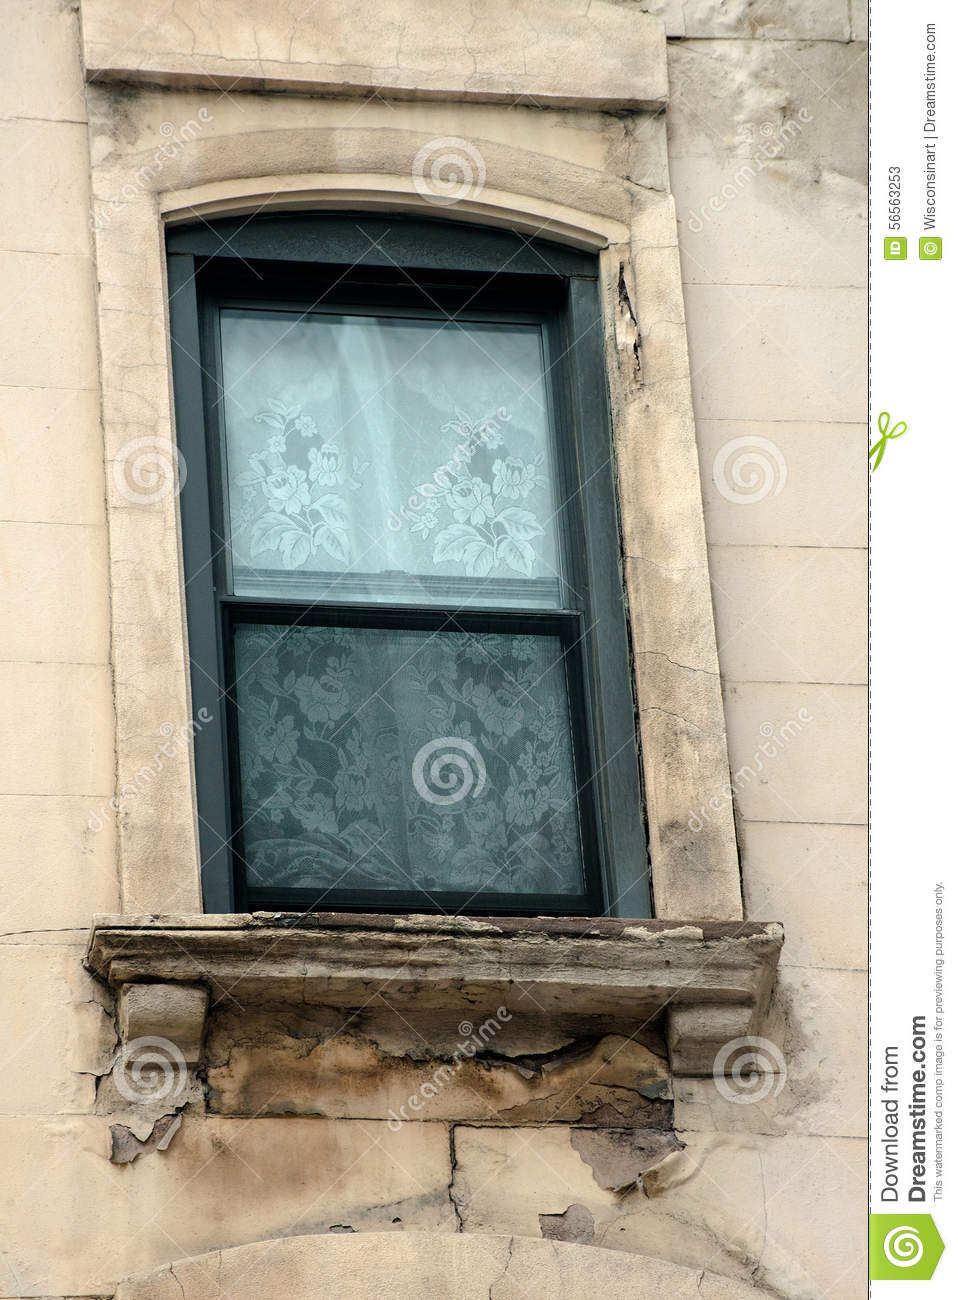 Masonry Building Framed : Old apartment building window decay stock photo image